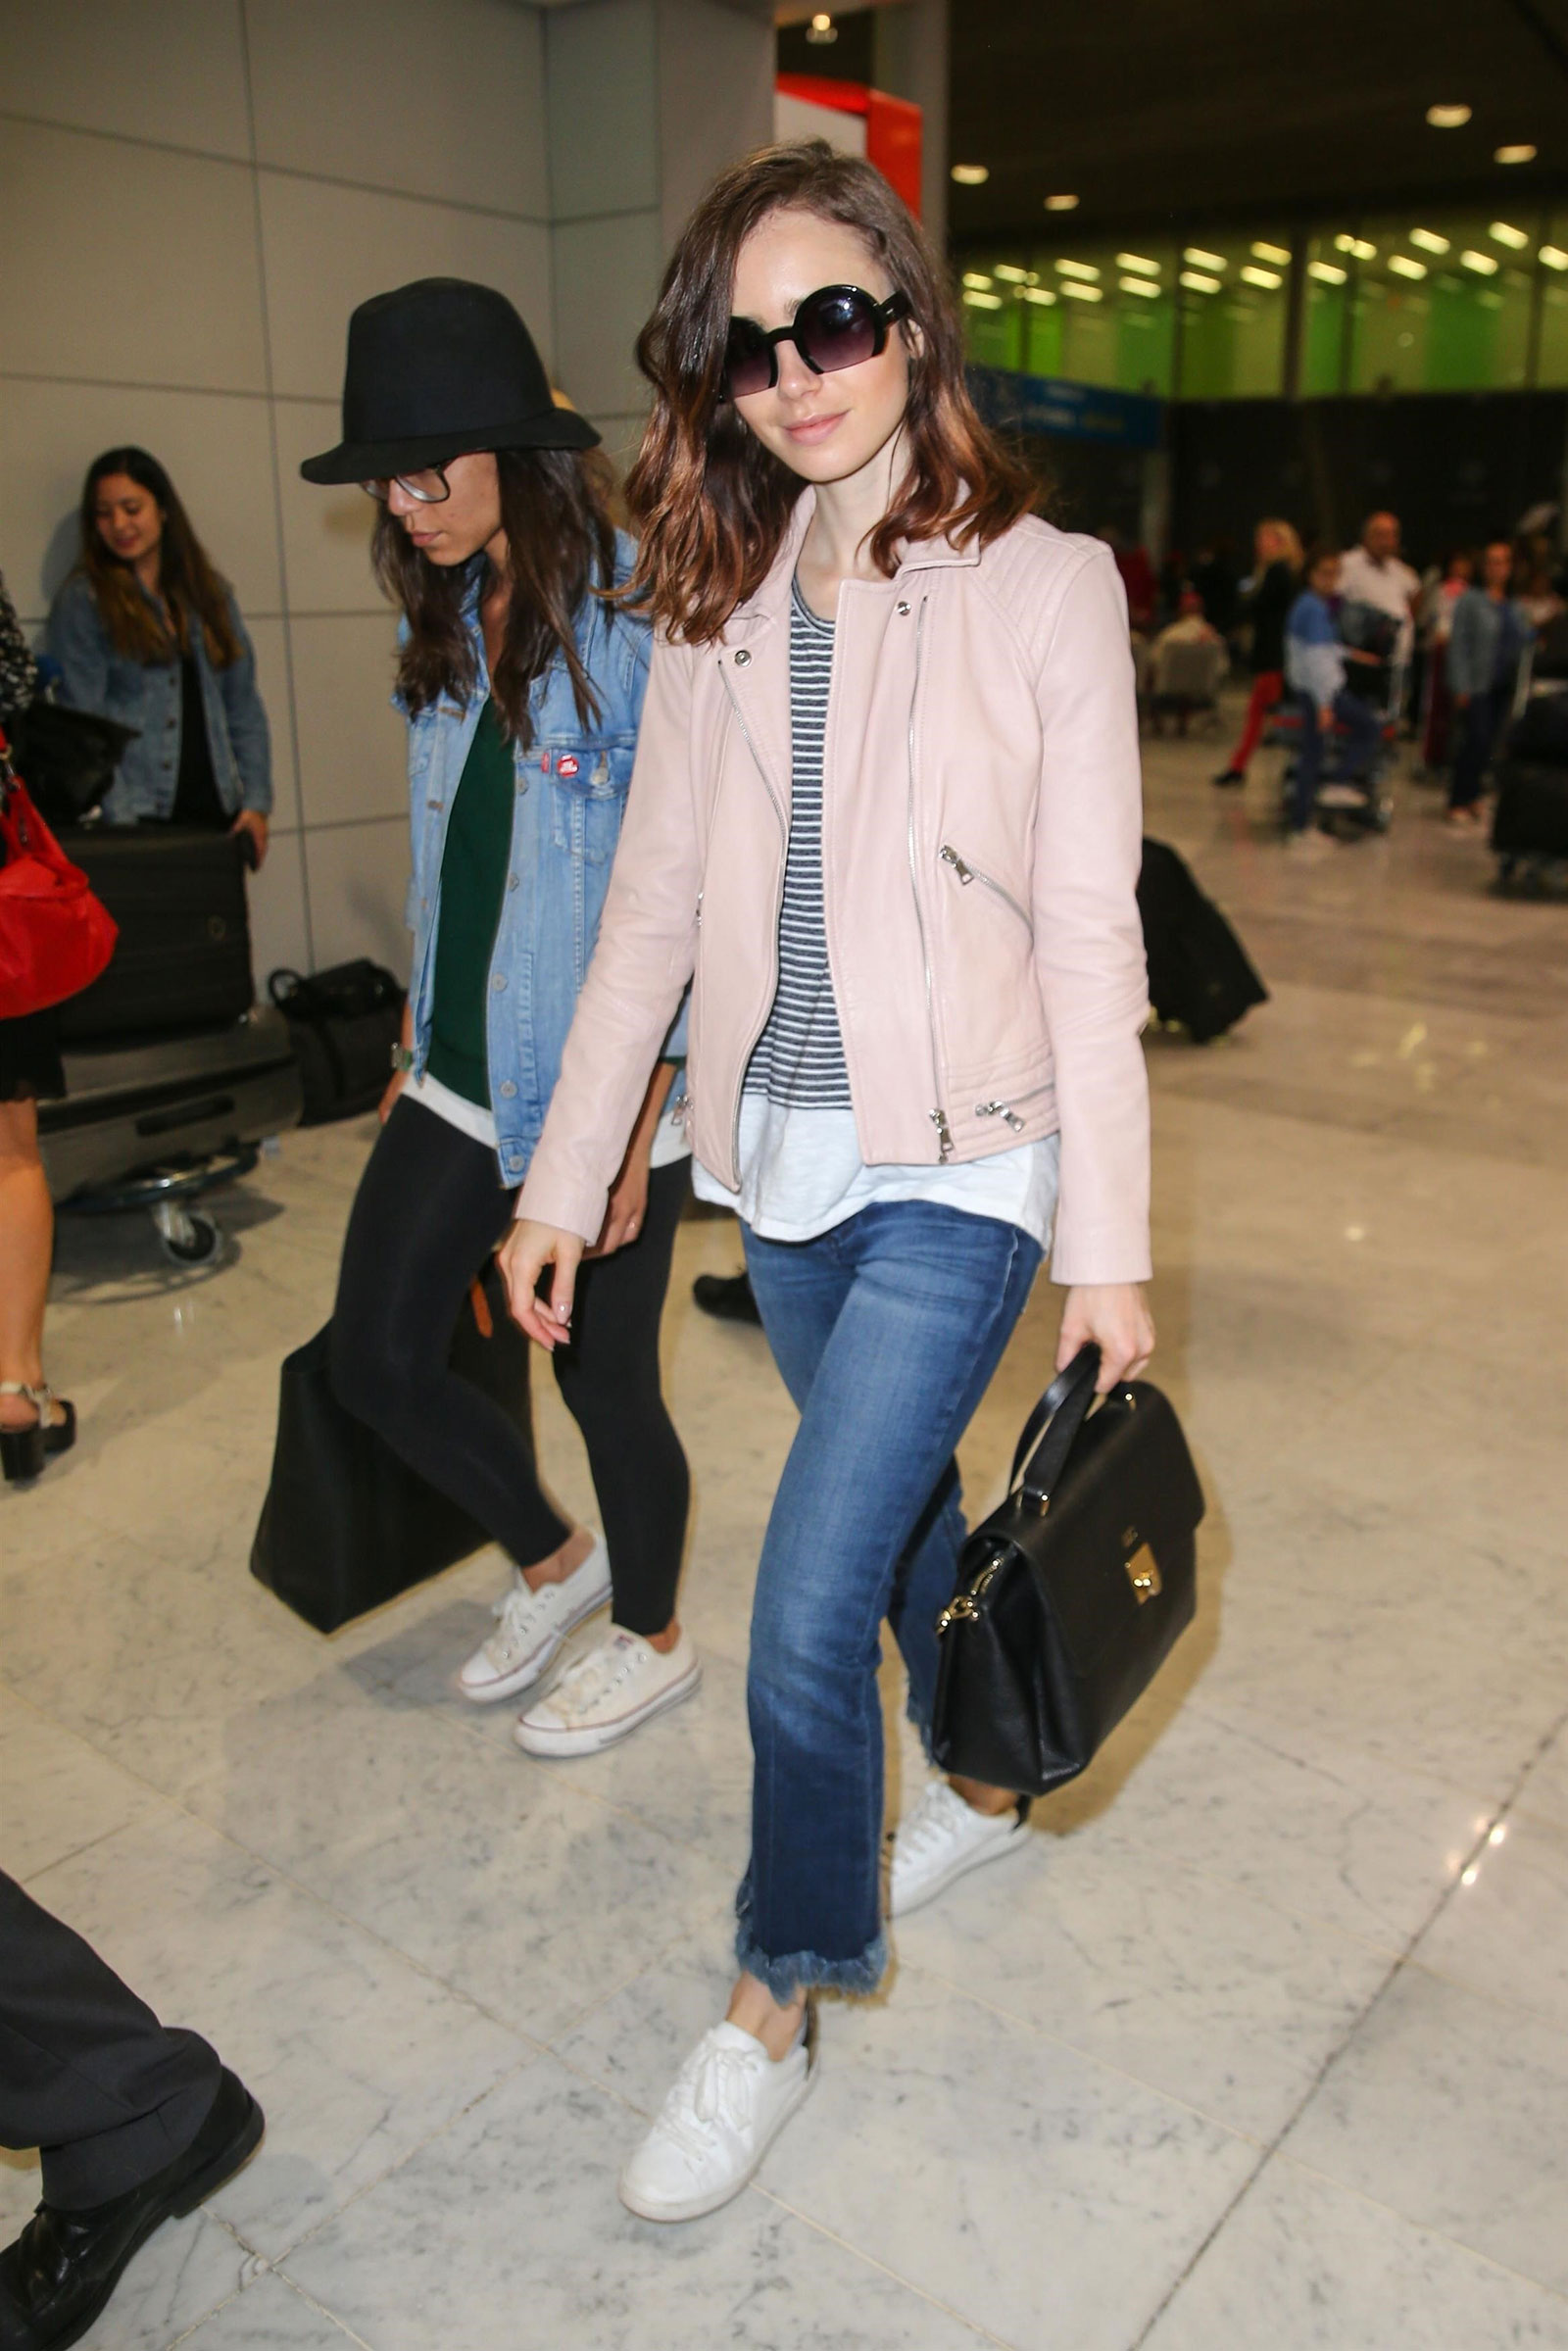 Lily Collins wears a pink moto jacket and stripes.